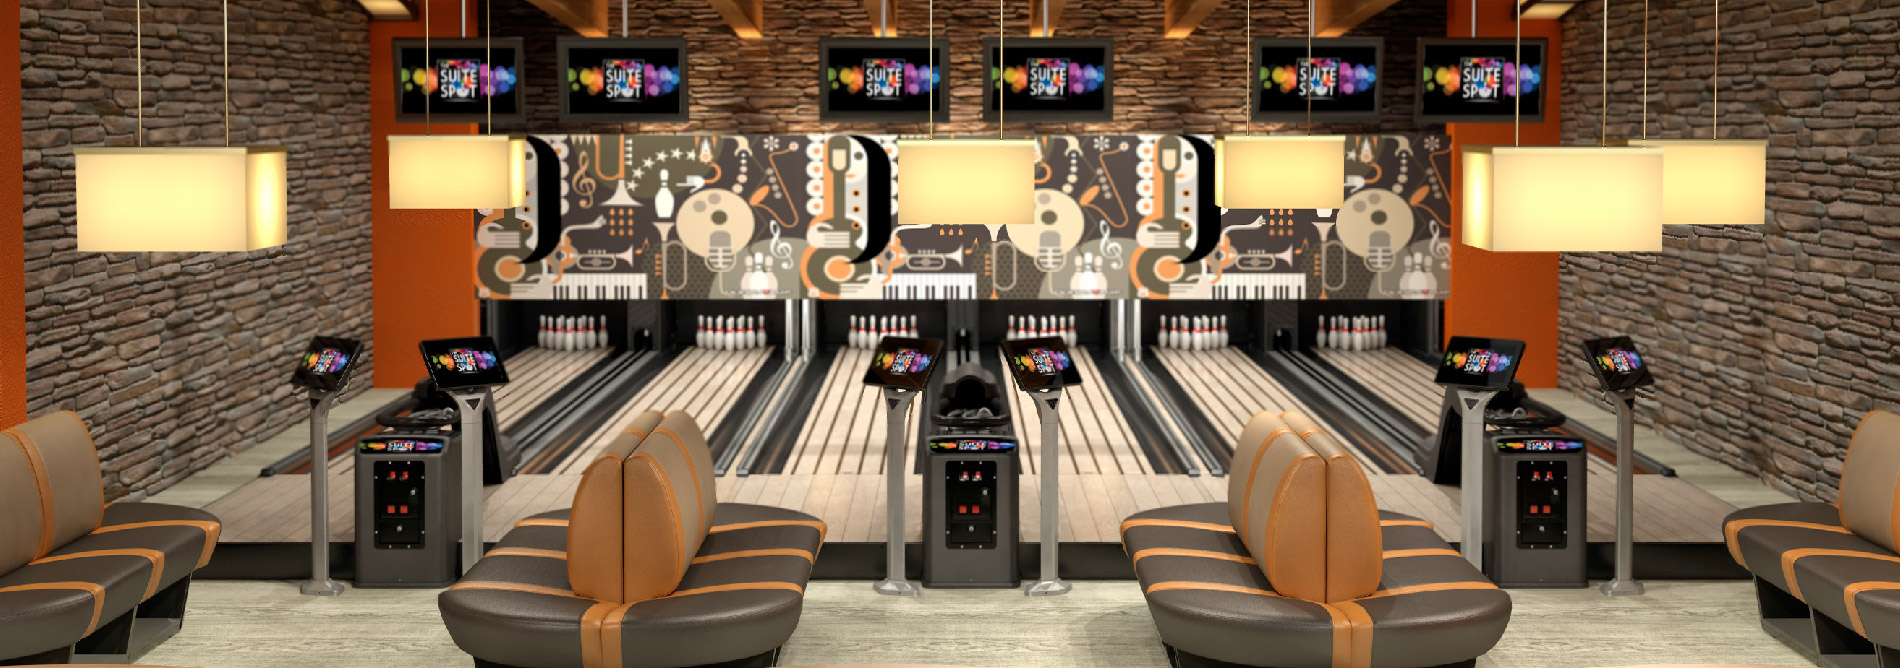 Bowling-QubicaAMF-mini-bowling-the-suite-spot-banner.jpg